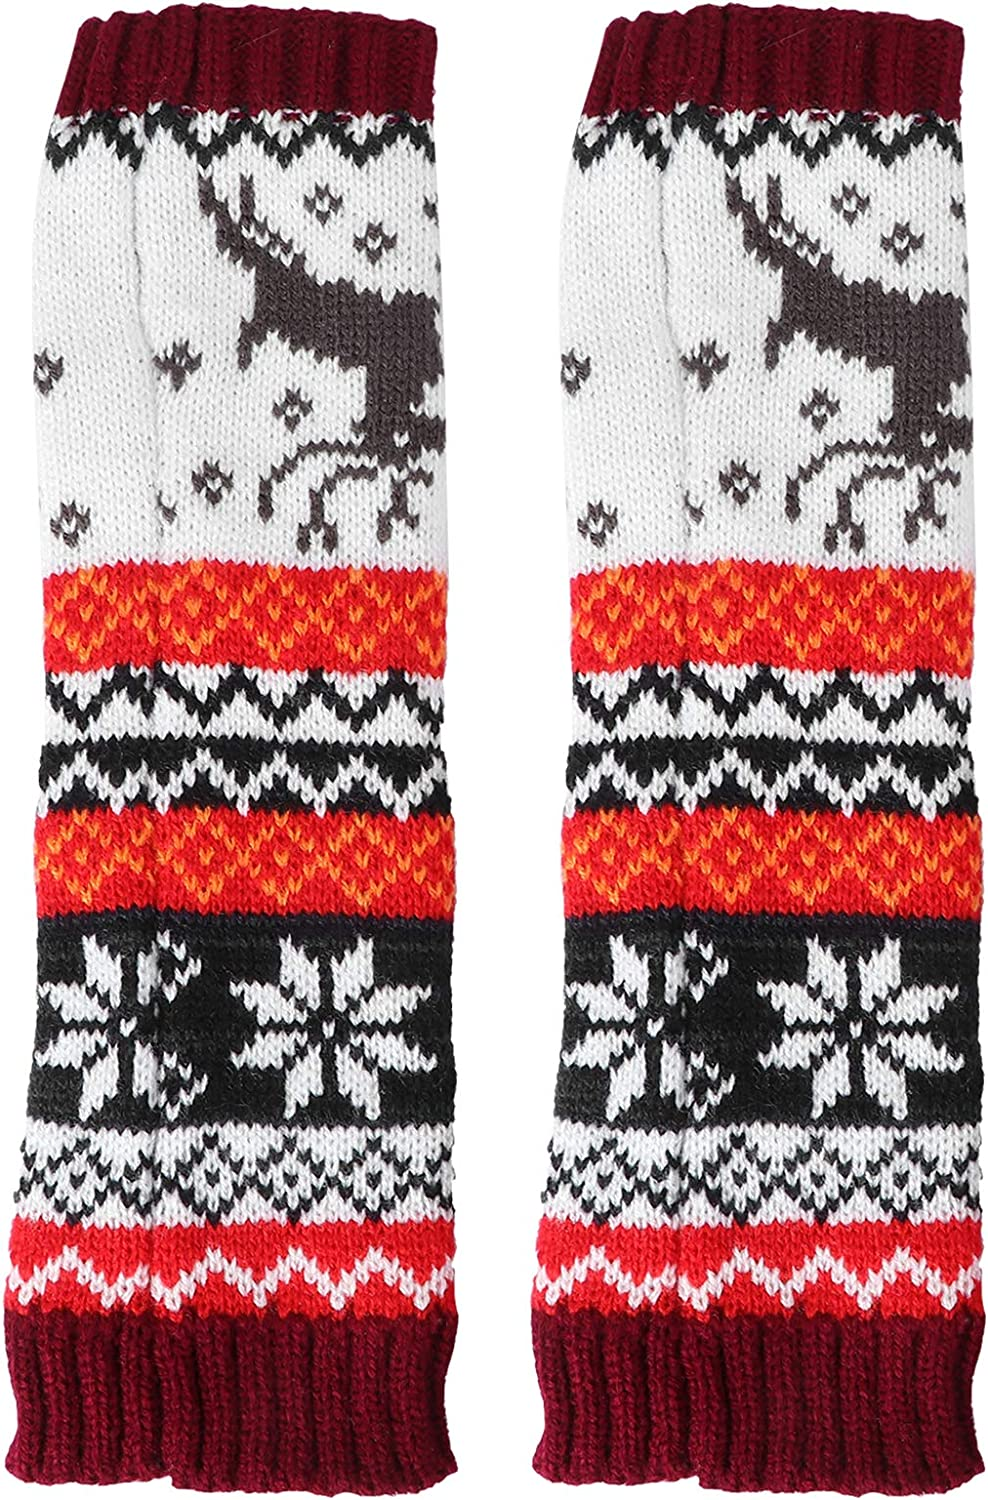 ABOOFAN 1 Pair of Knitting Glove Arm Sleeve Winter Cartoon Christmas Gloves for Lady Christmas Decoration Supplies